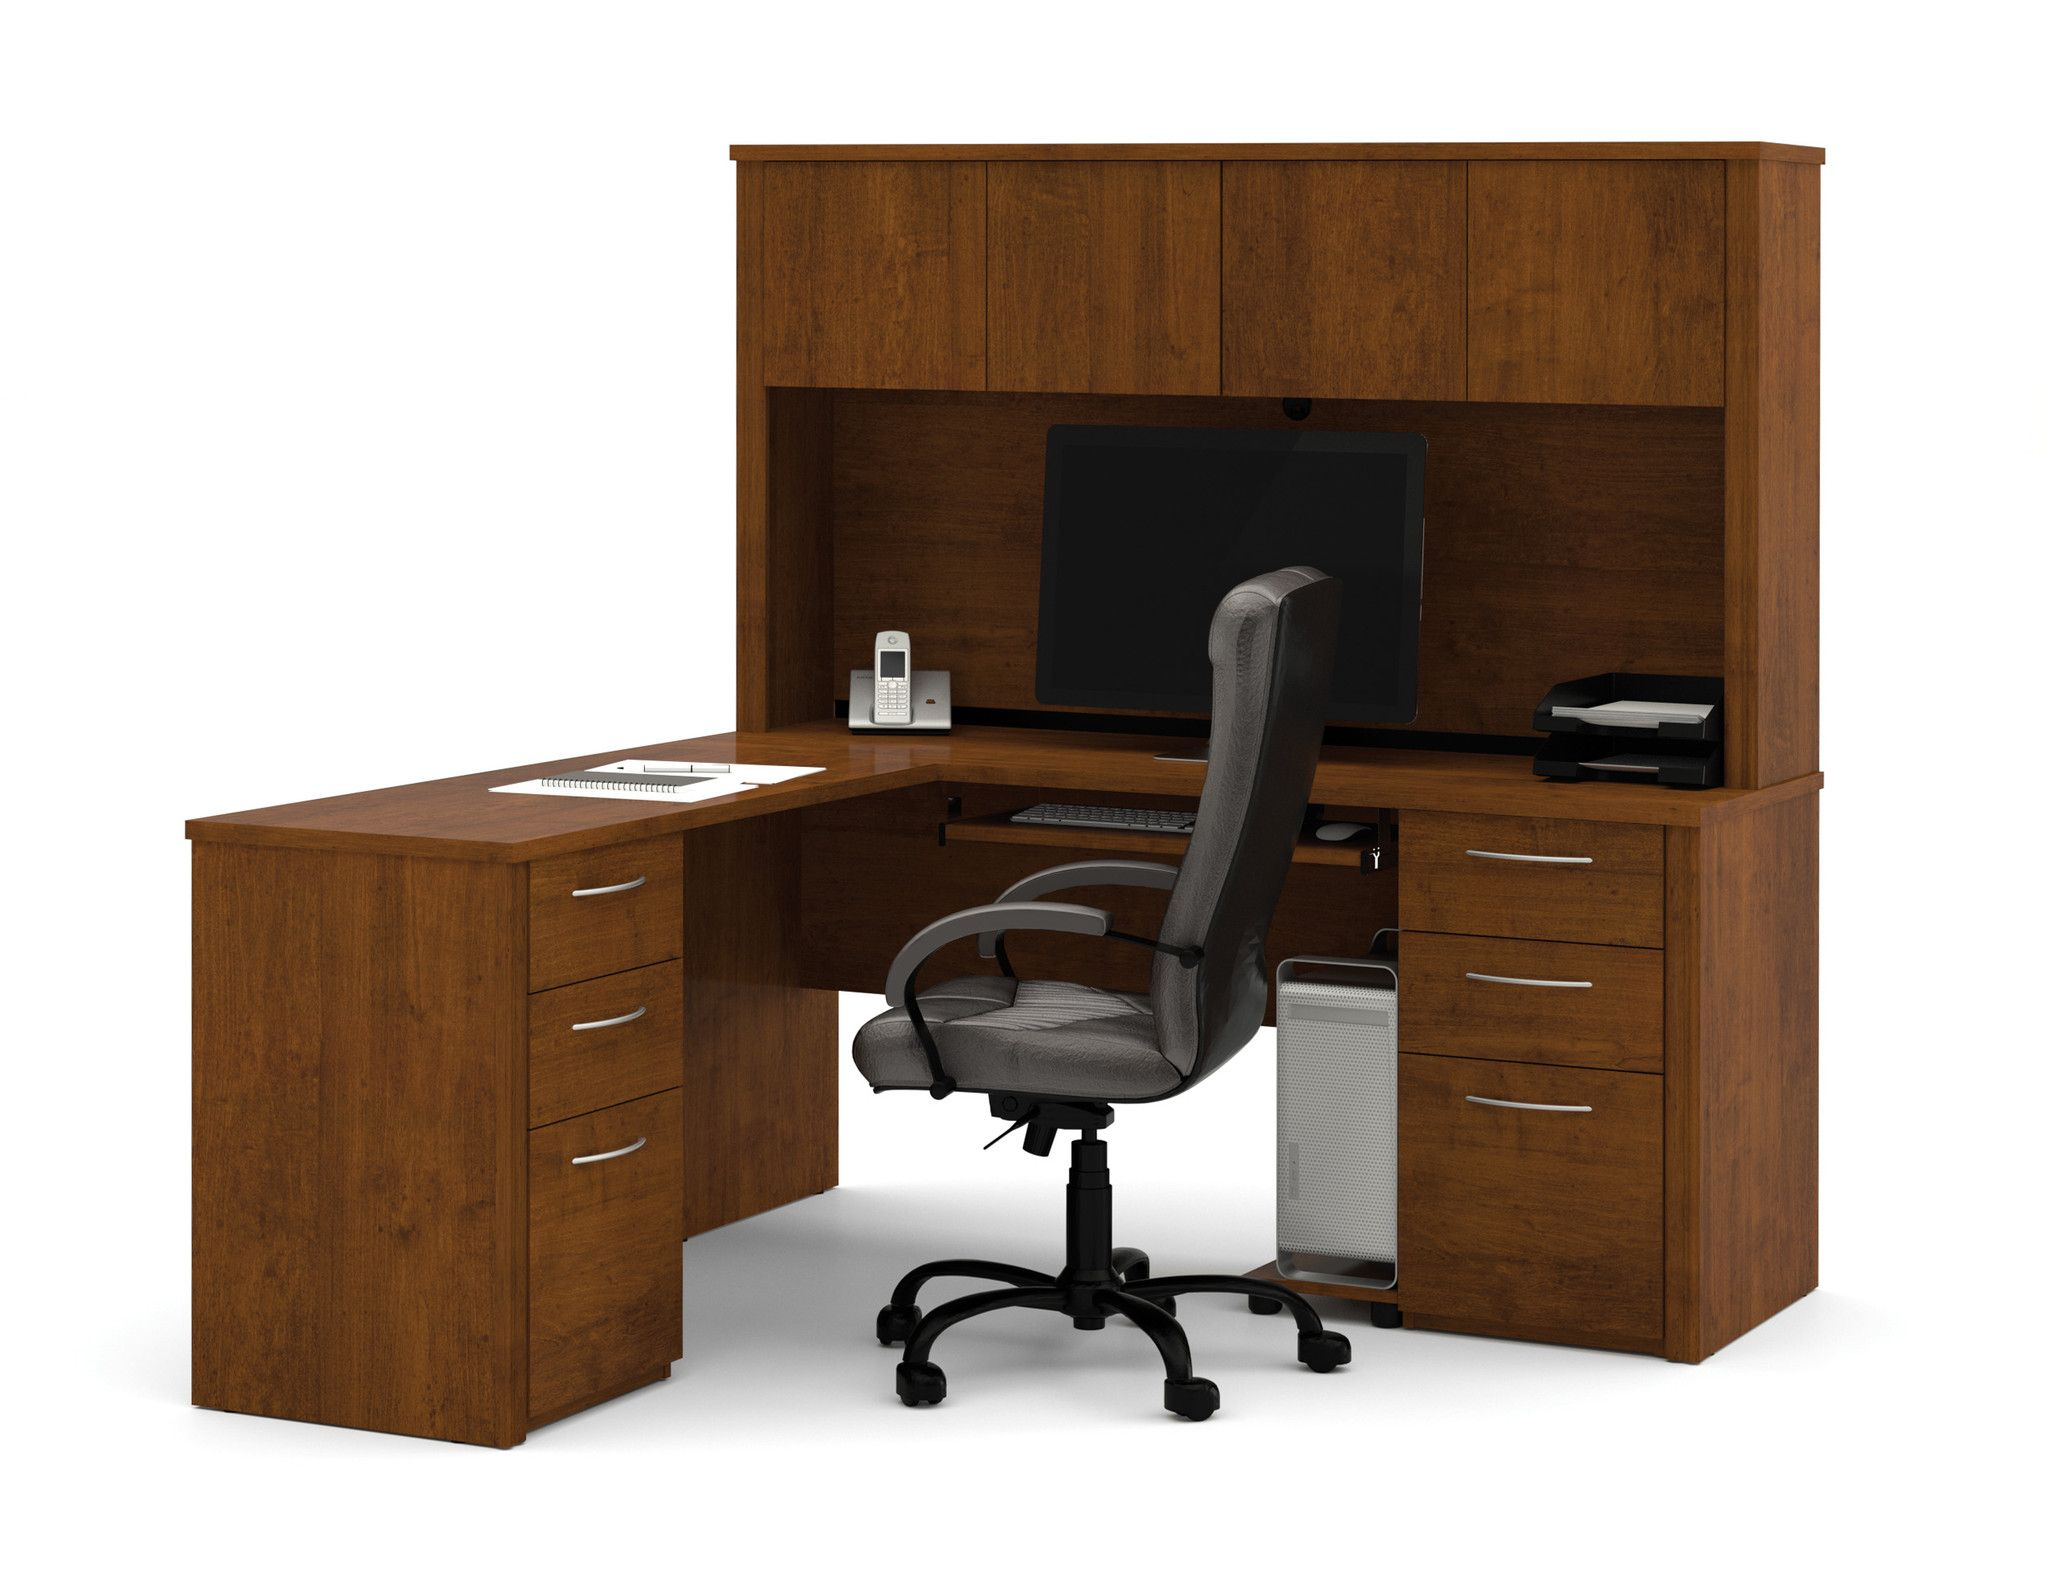 Double pedestal lshaped desk with hutch in cappuccino cherry or